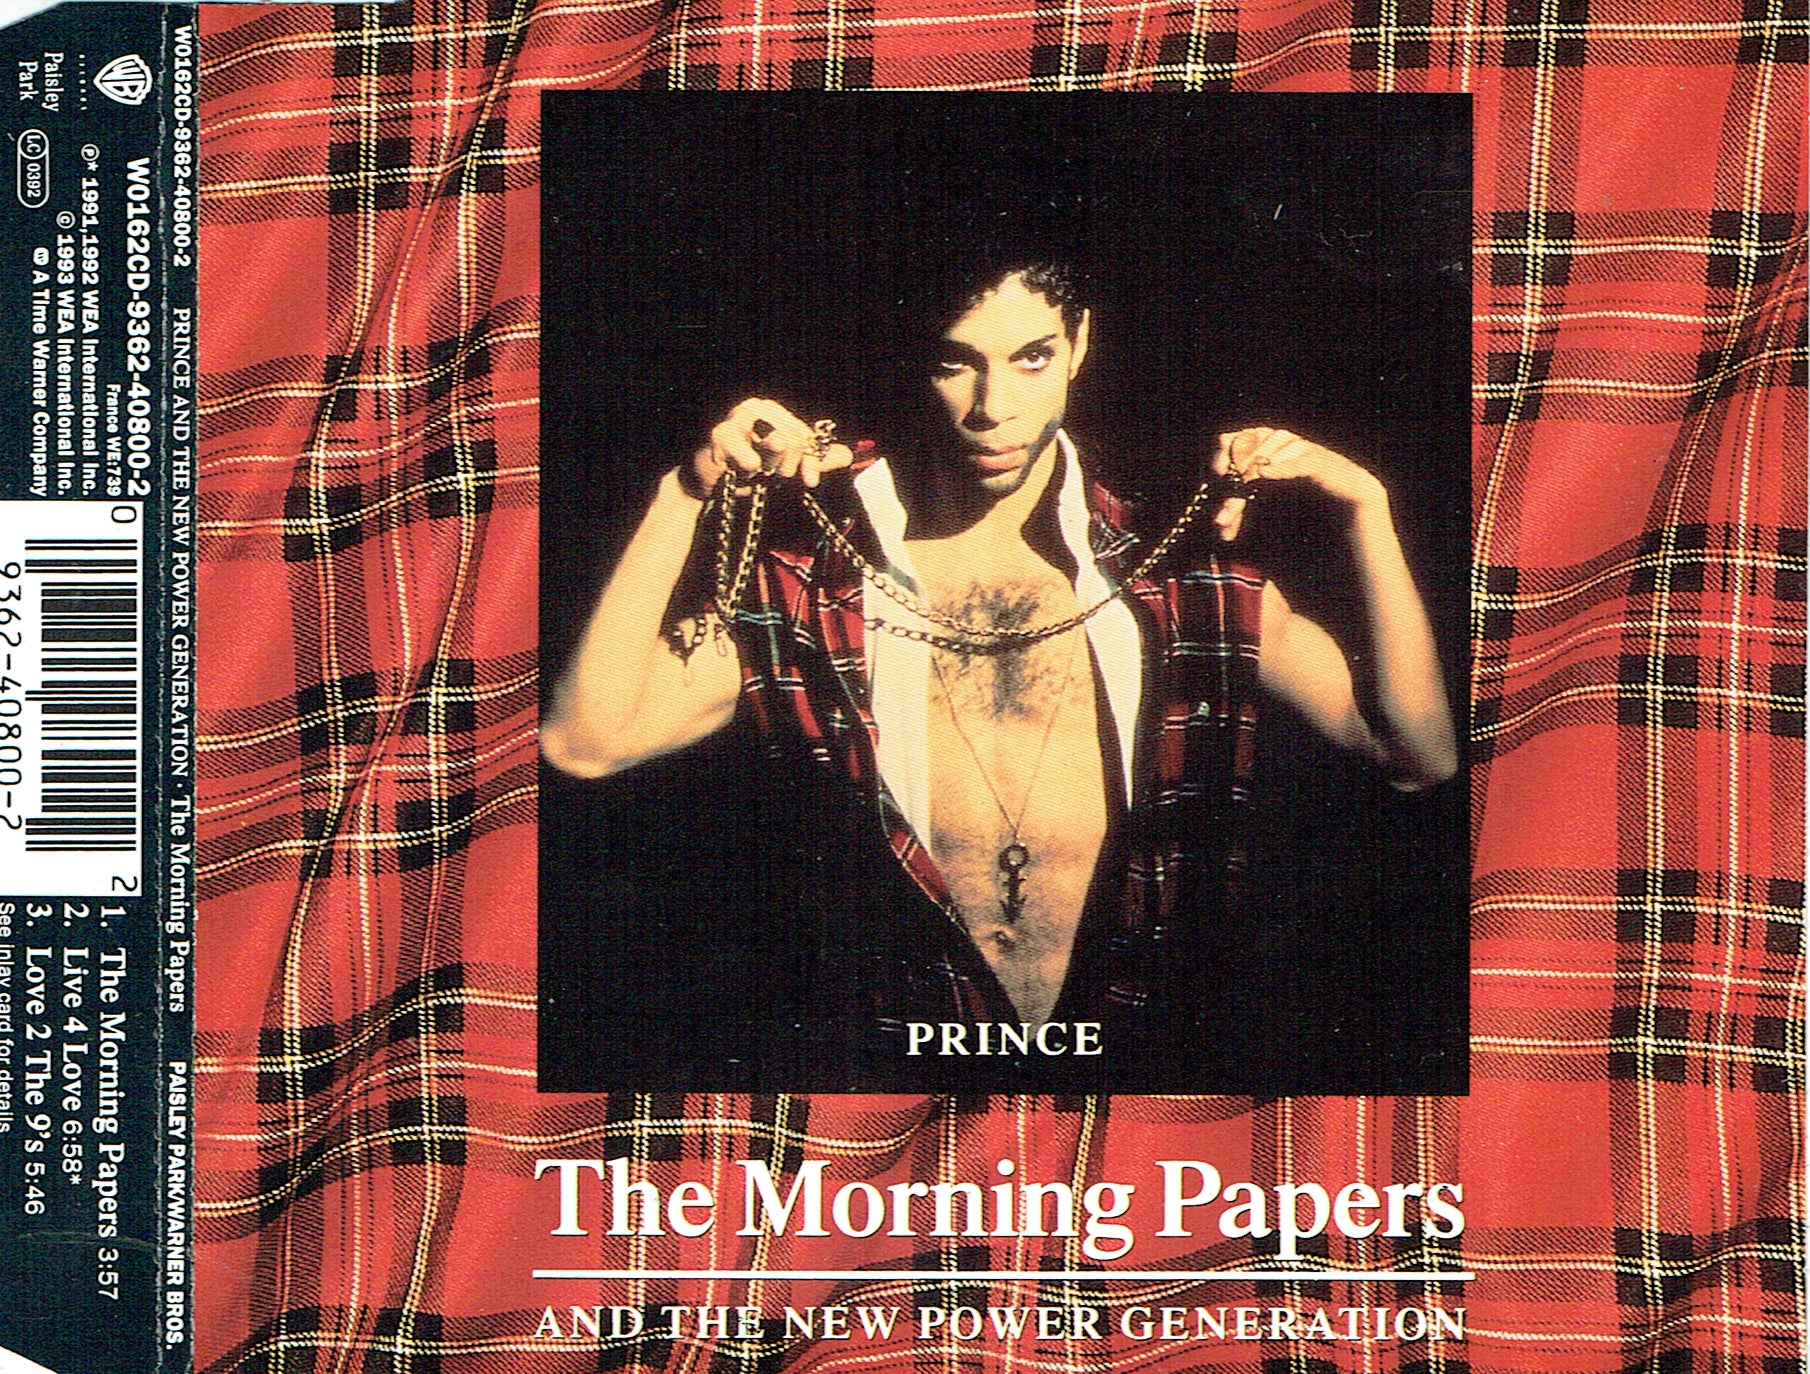 Prince NPG Morning Papers UK CD Single 1993 Original 3 Tracks Pre Owned